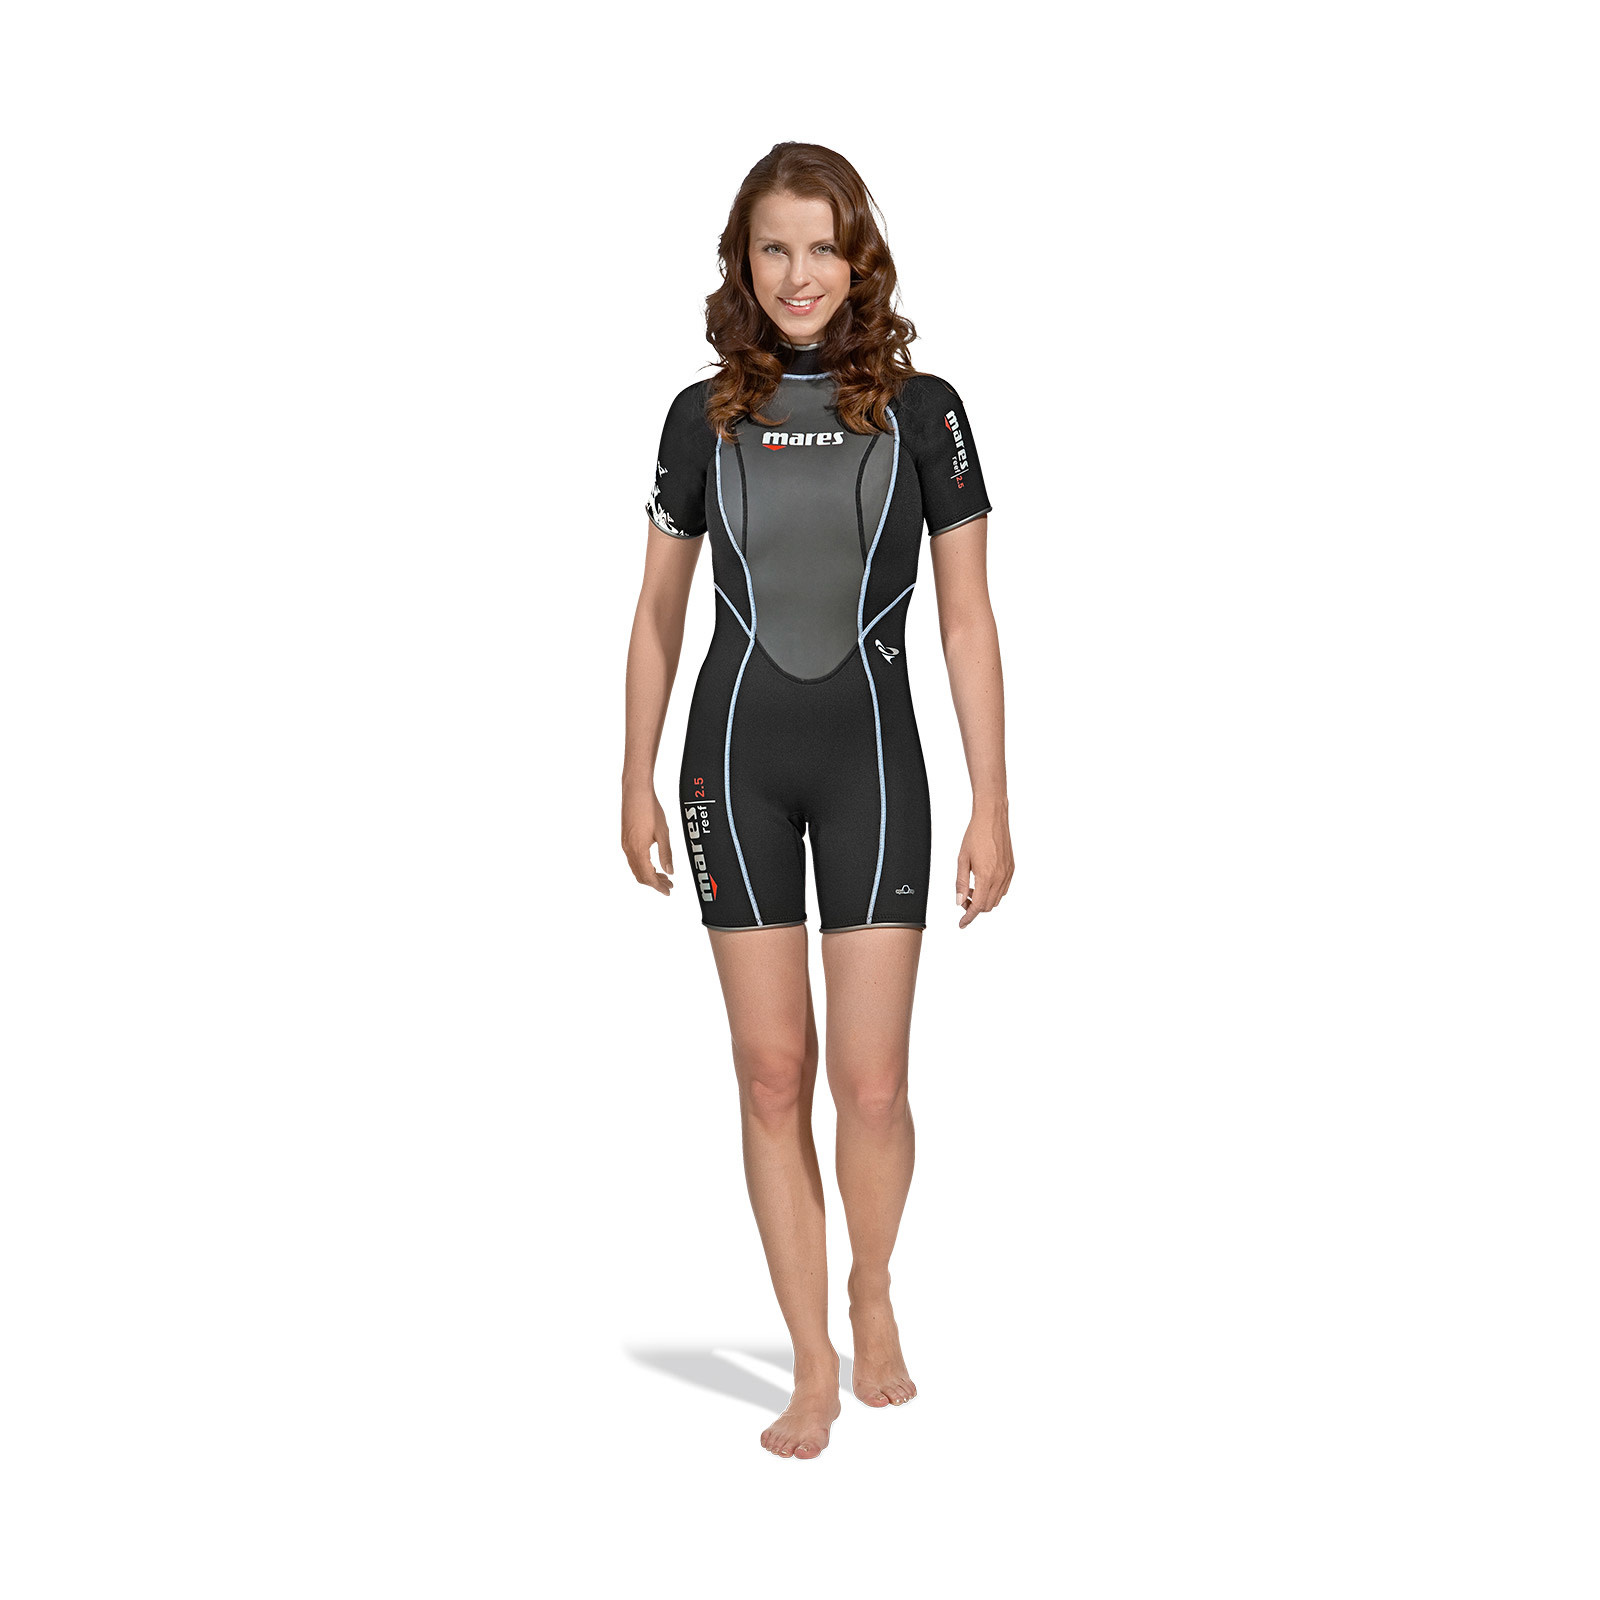 Mares Reef 2.5mm She Dives shorty wetsuit-3